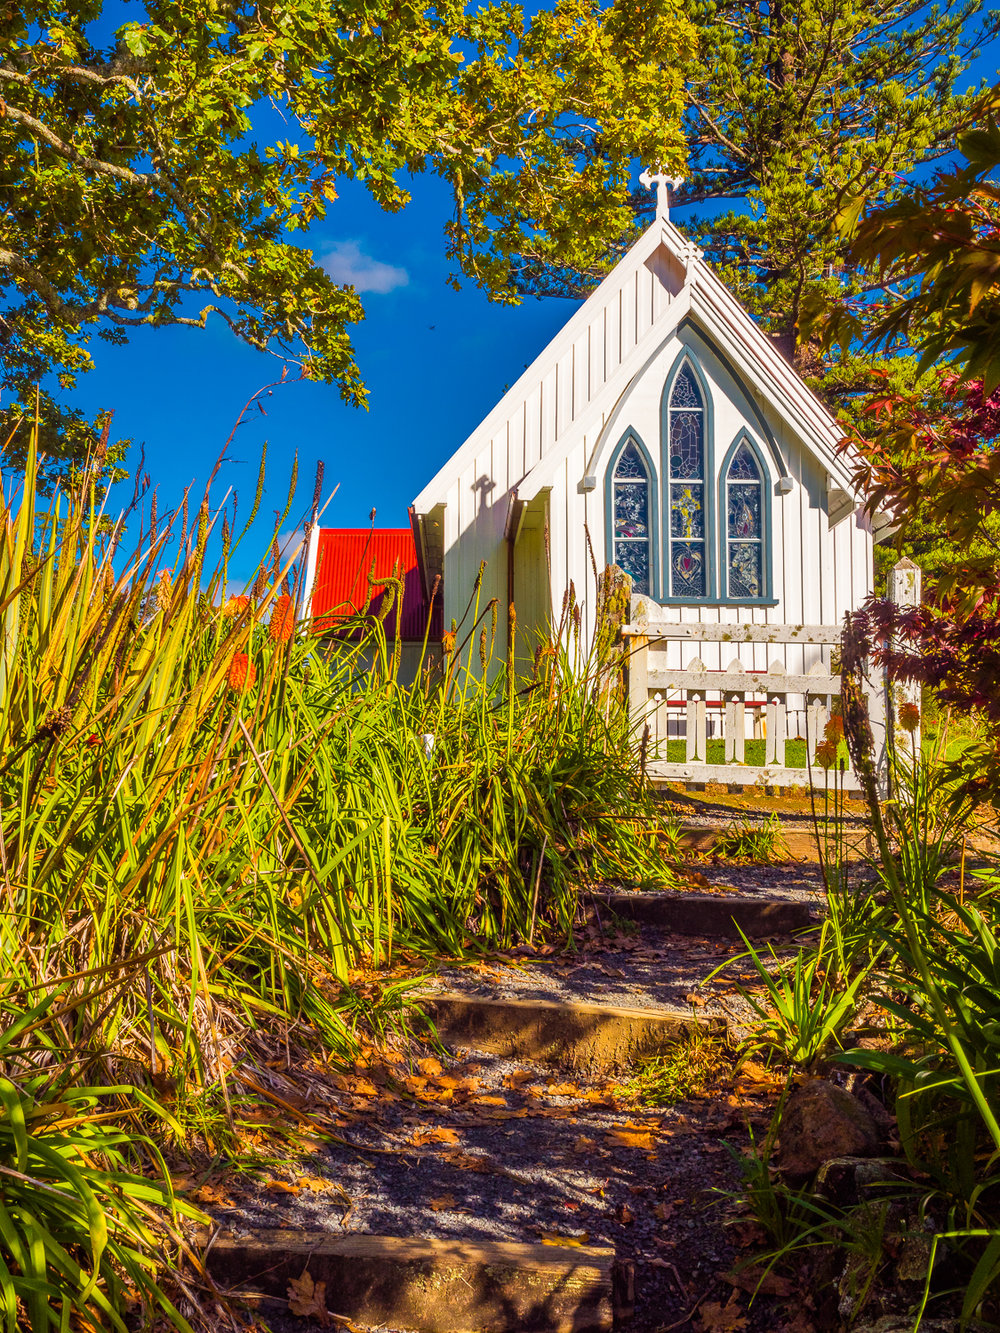 St James Church, Kerikeri Inlet, Northland